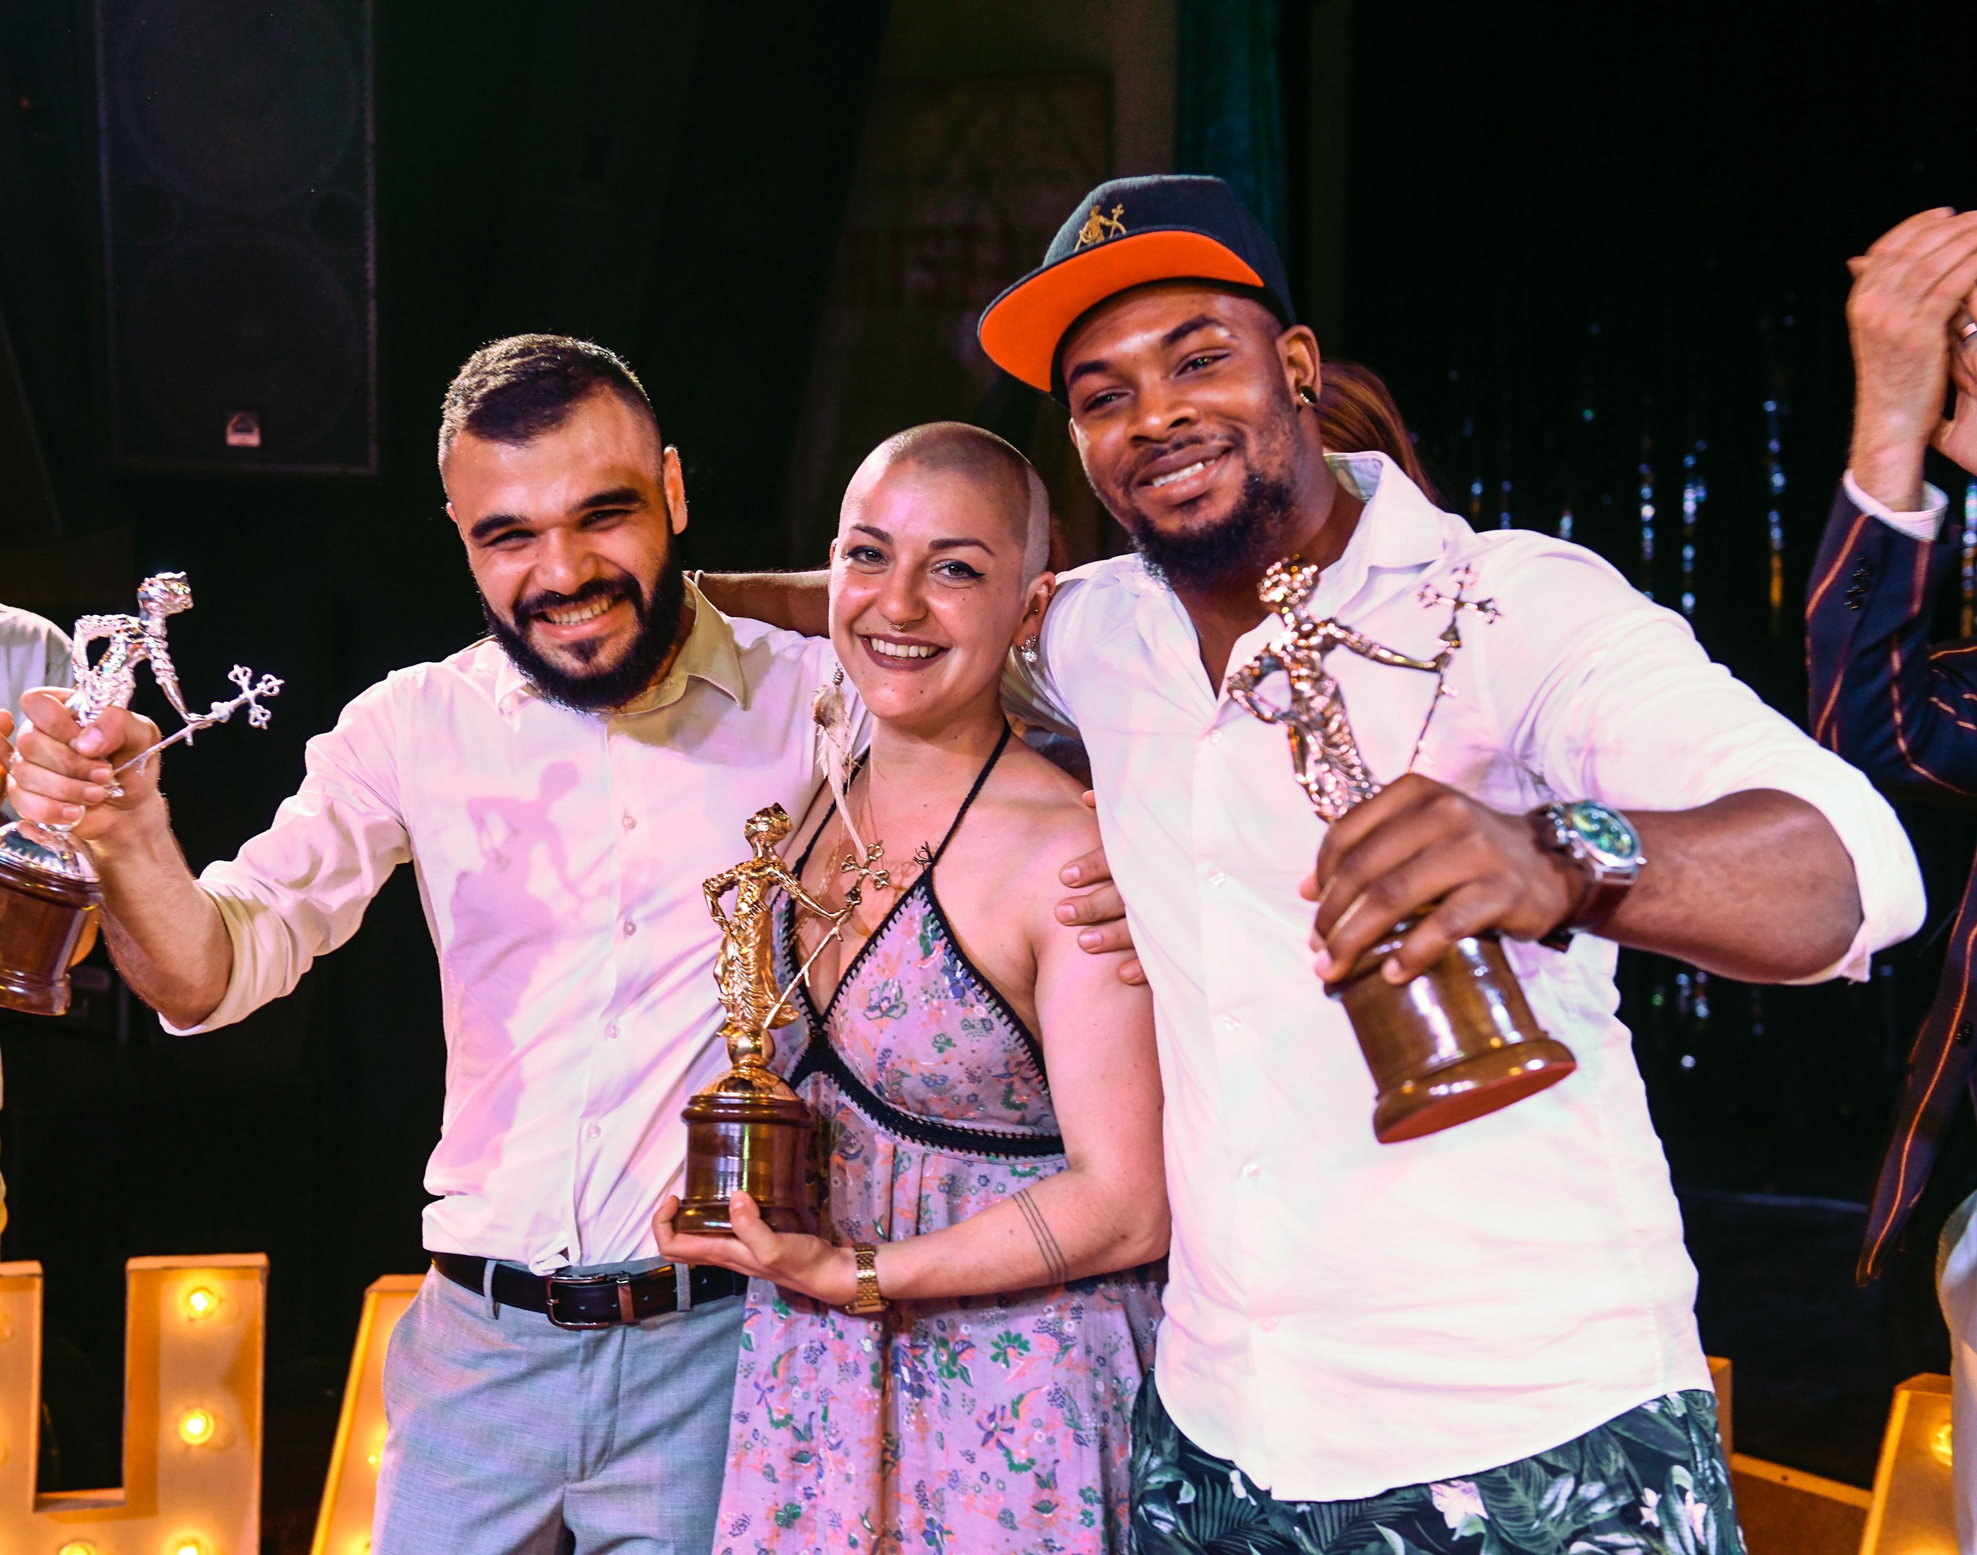 From left to right: Stepan Abrahamyan, from Armenia, second place; Ninon Fauvarque, from France, first place; Johnson Wisdom Dogbey, from Ghana, third place (Havana Club/PA)